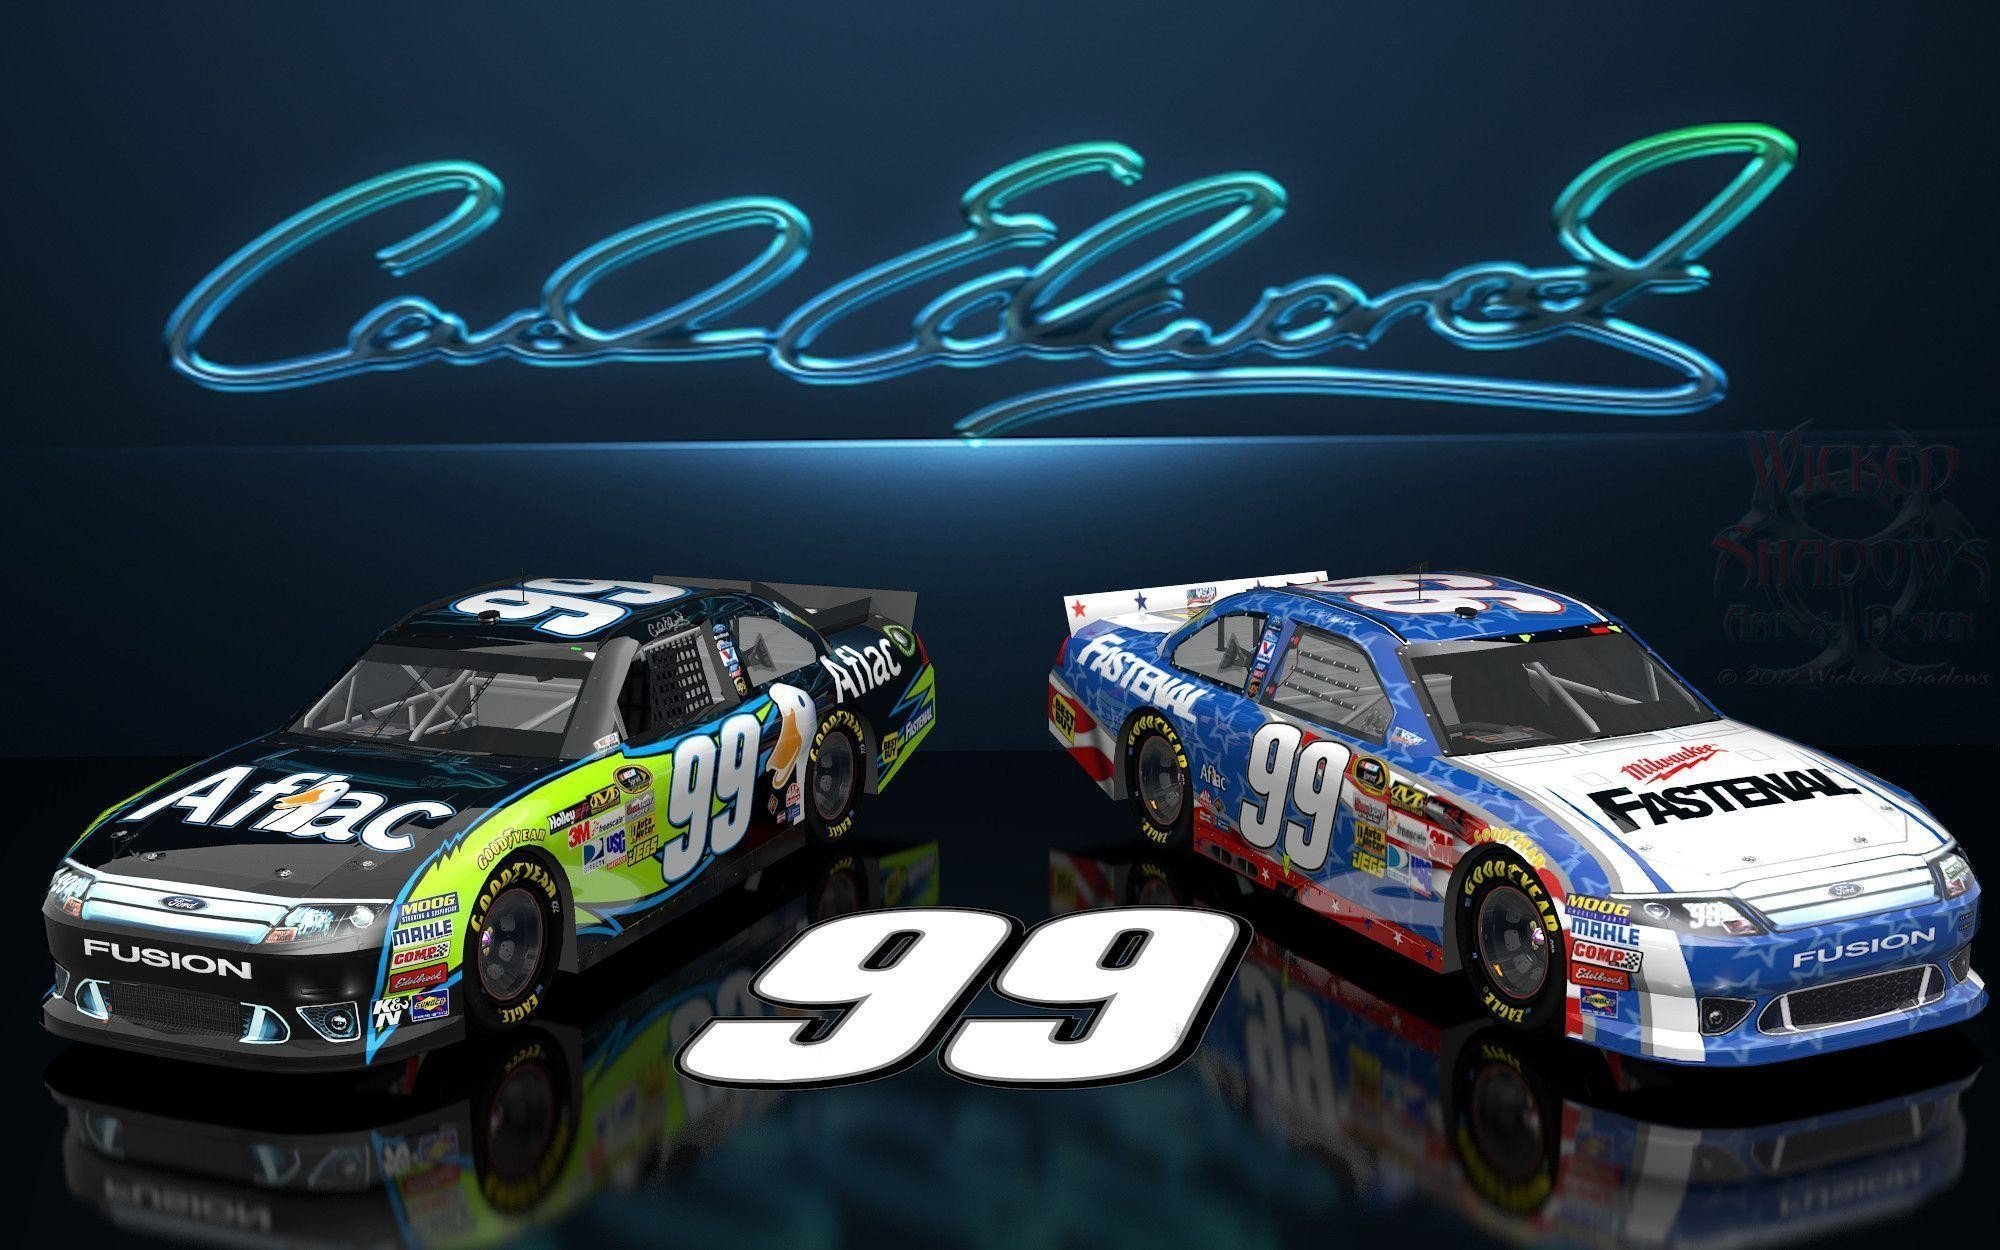 Res: 2000x1250, Nascar Carl Edwards Wallpaper 19517 High Resolution | wallpicnet.